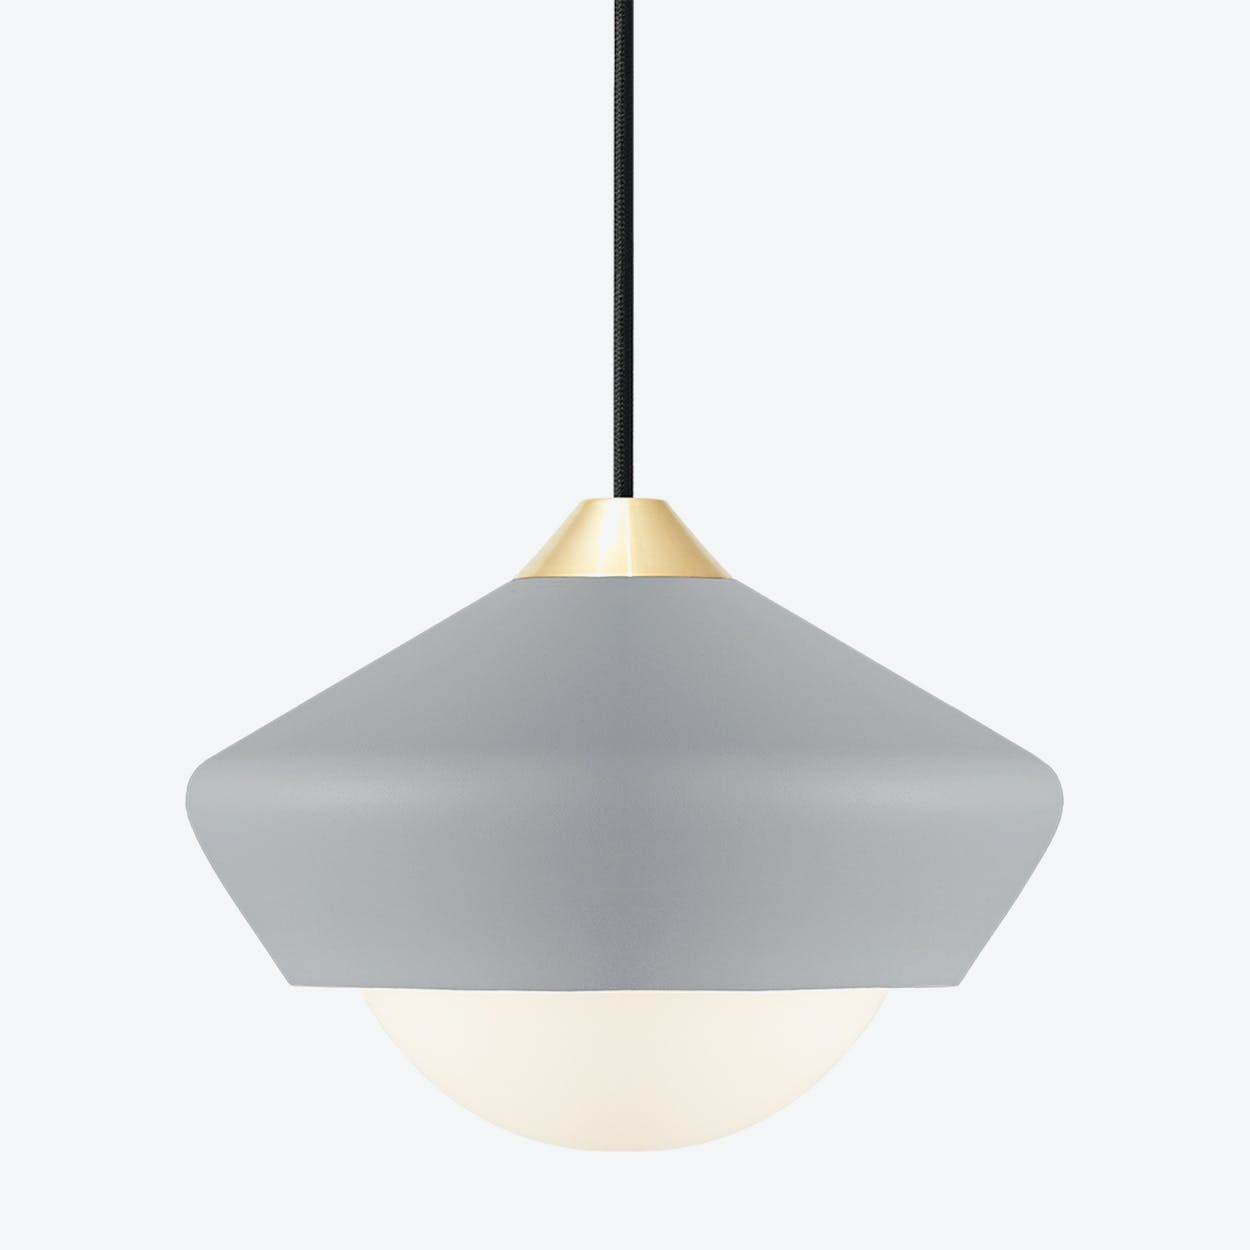 Bright Moon Pendant Light in Grey